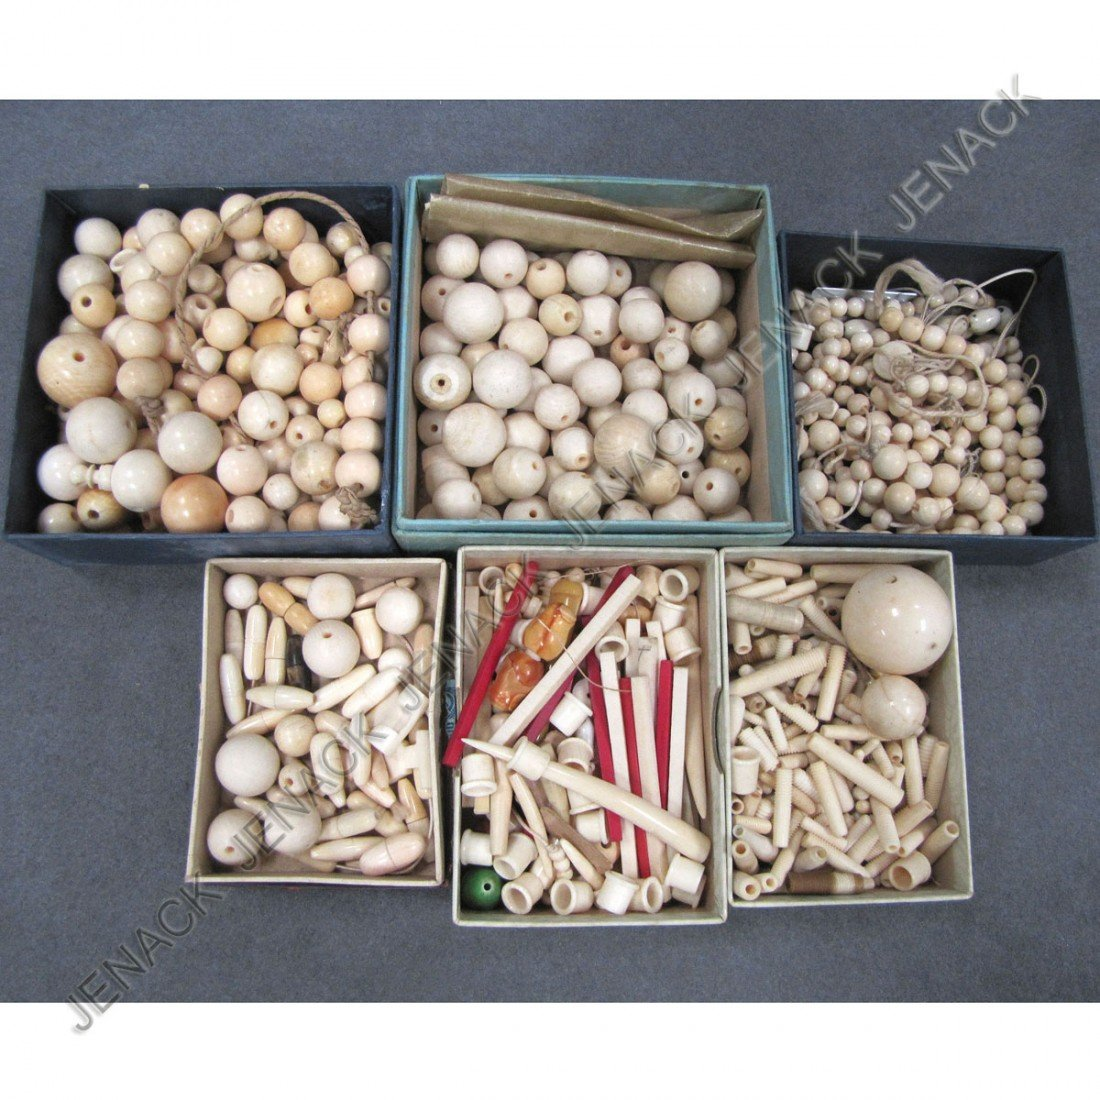 391: LOT ASSORTED IVORY BEADS, CLASPS, SPACERS